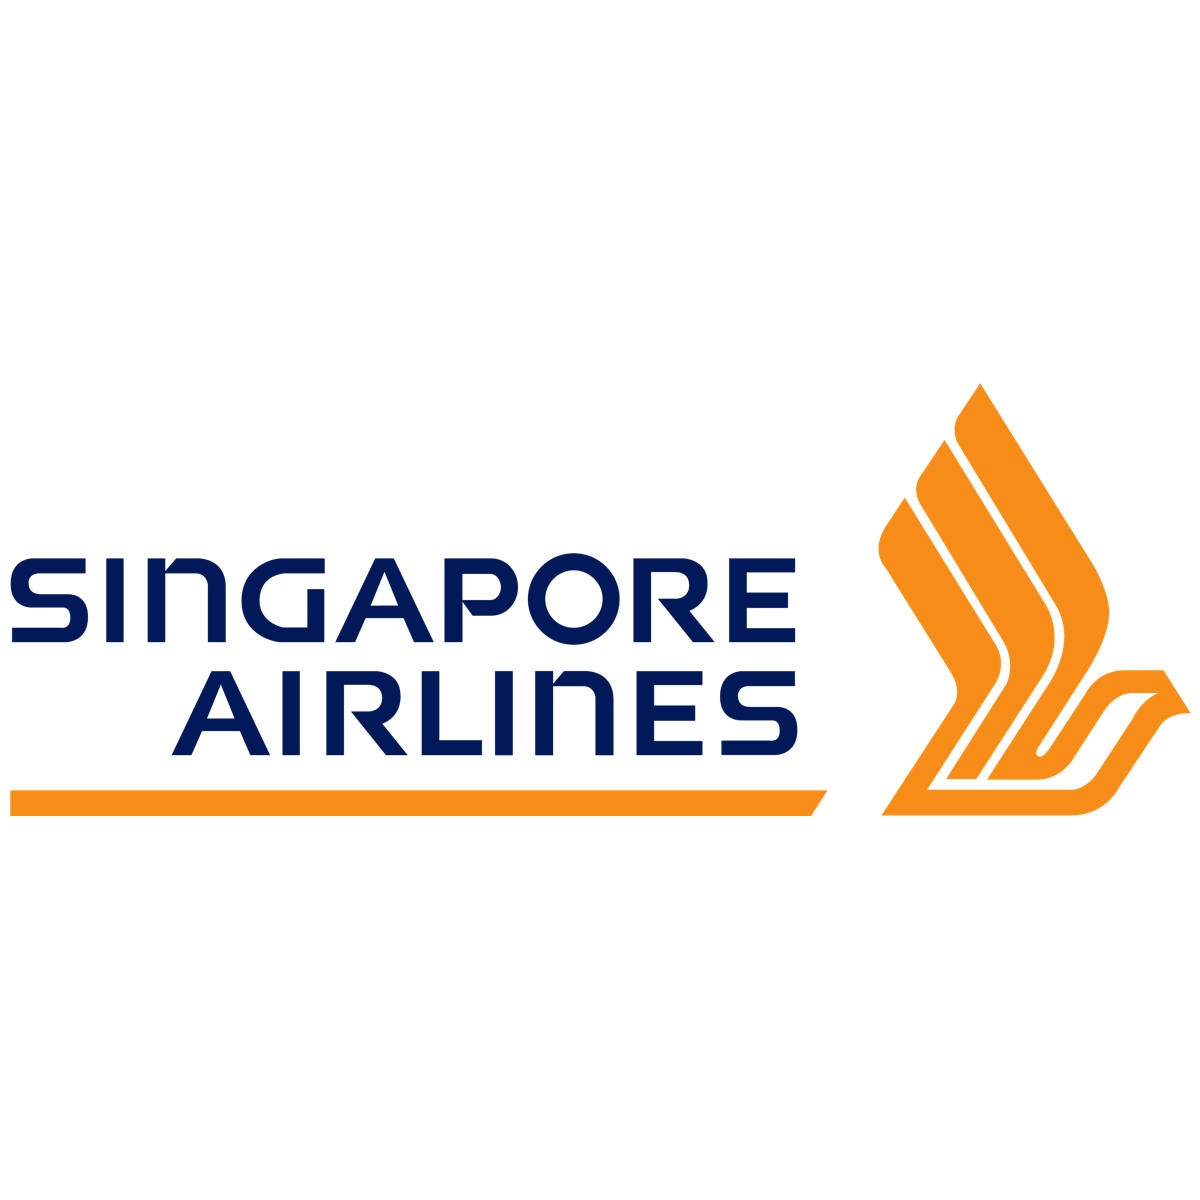 Singapore Airlines - DBS Vickers 2017-11-09: Weak Yields Remain The Key Concern